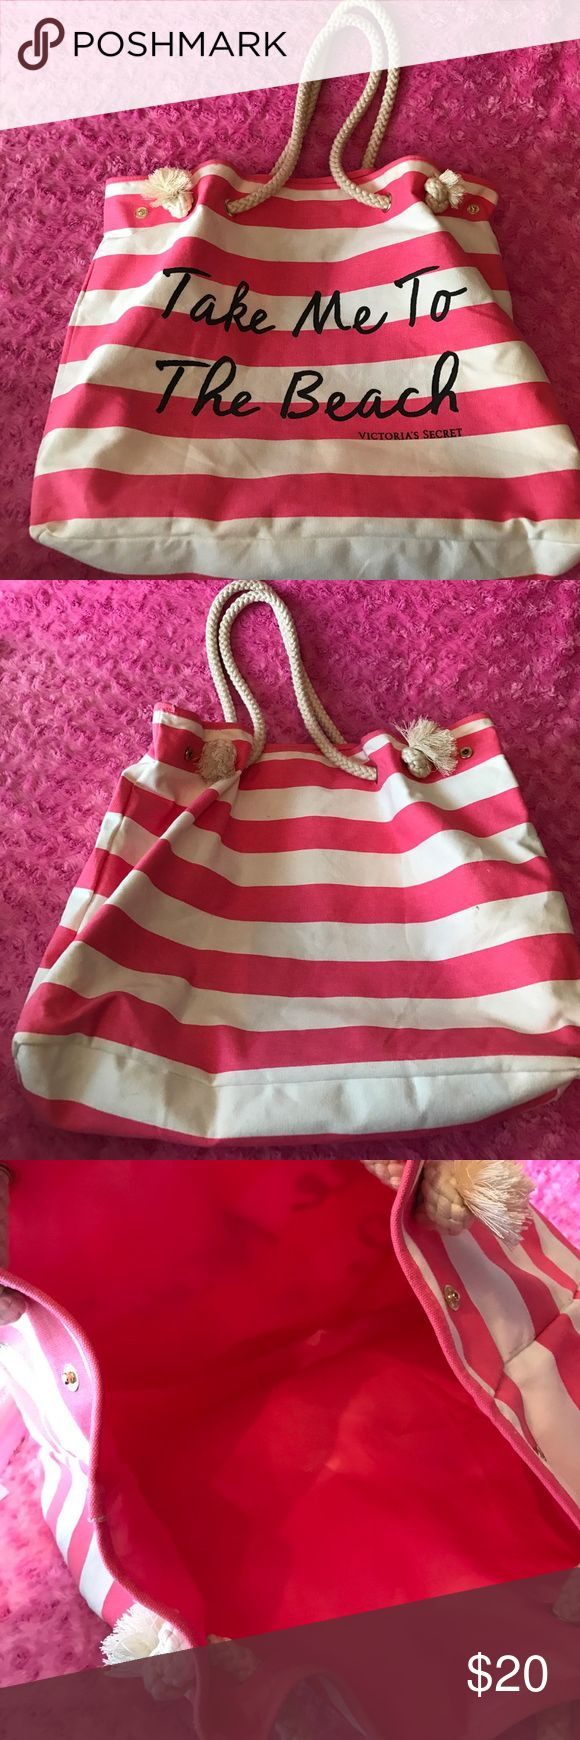 Like New VS Tote I've never used this only stored! There may be a little dirt from storage (price reflects this only) however nothing that can't be cleaned like new! 🤗 super nice tote perfect if your going to the beach...or not! 👙 (not Pink VS just VS) PINK Victoria's Secret Bags Totes